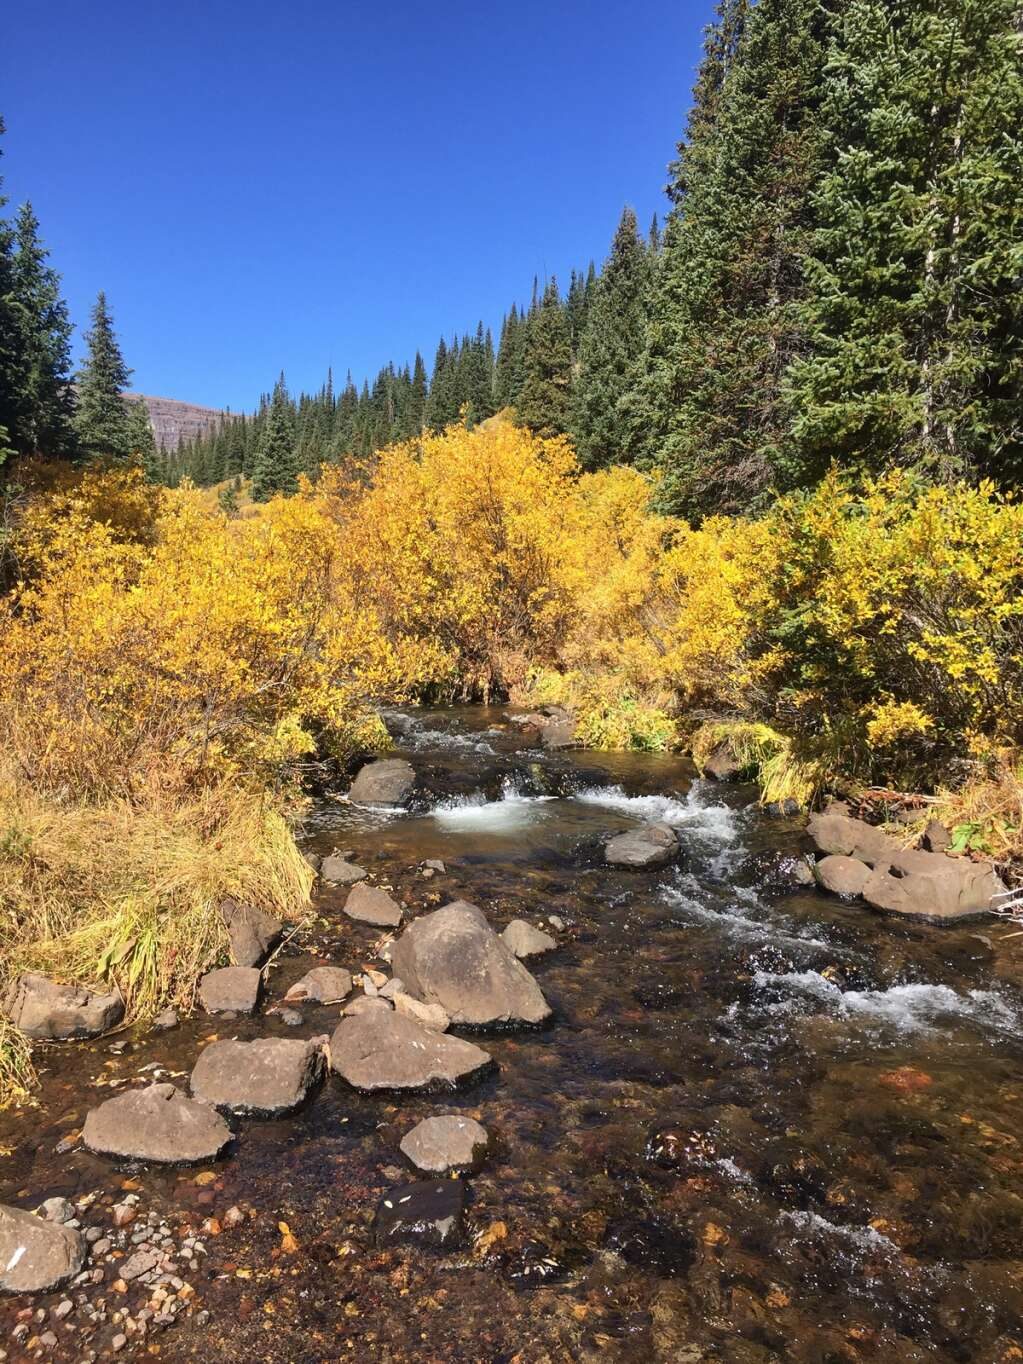 The Mandall Lakes trail in the Flat Tops Wilderness is gorgeous in the fall as well. (Photo by Shelby Reardon)